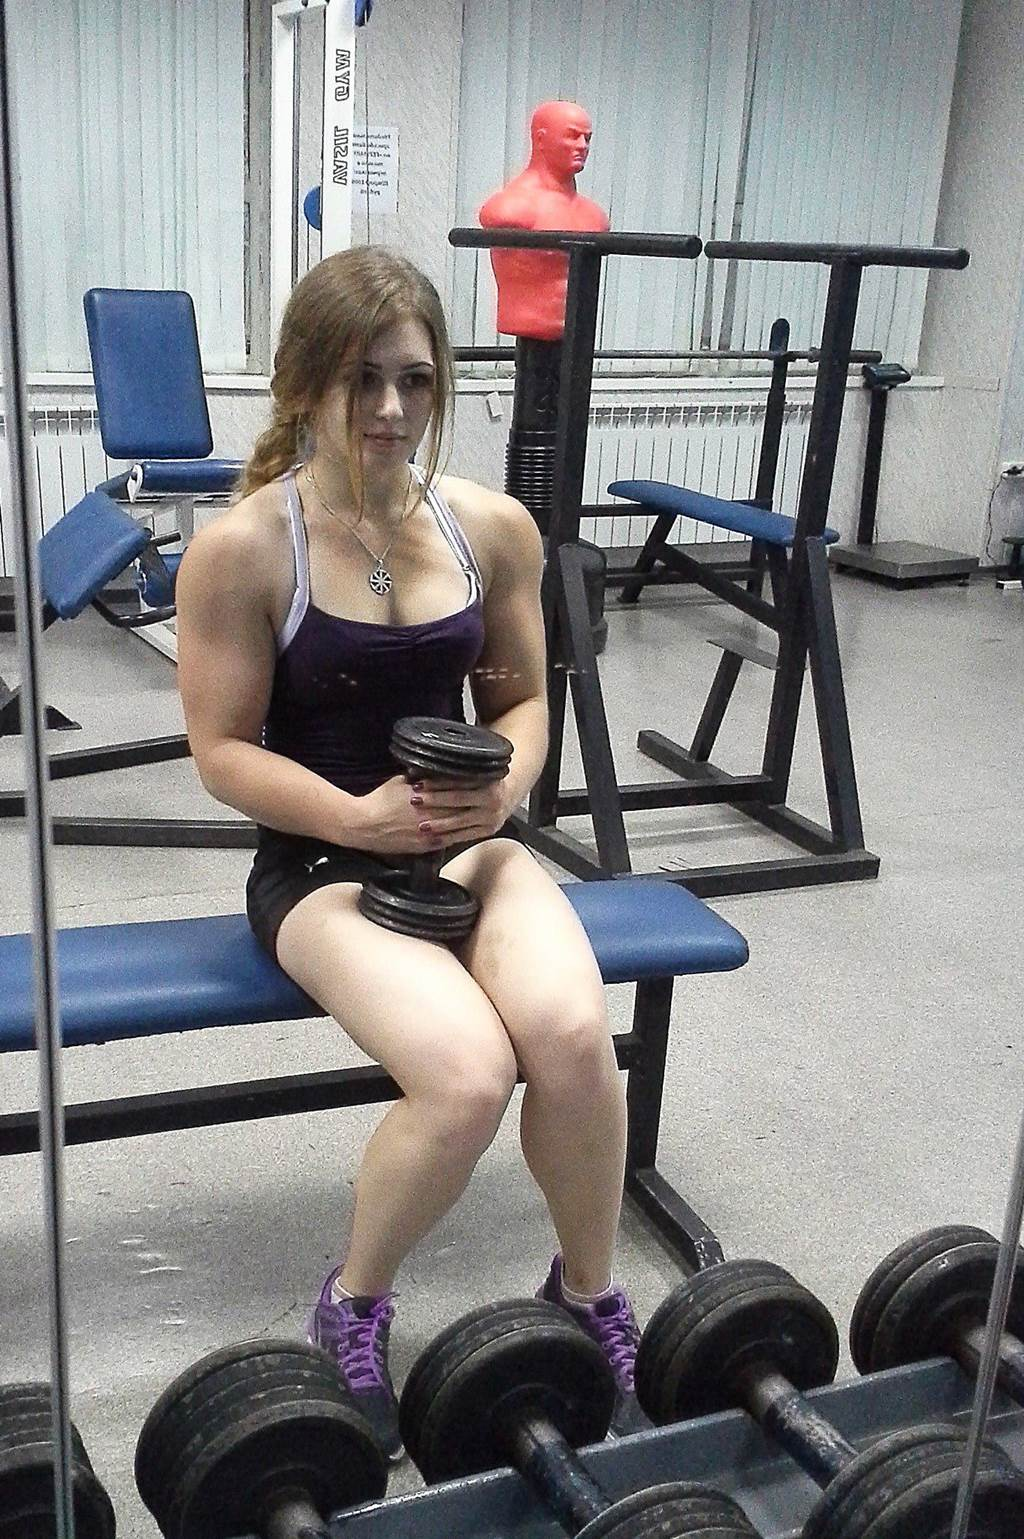 Cute Barbie Face Powerlifter Girl